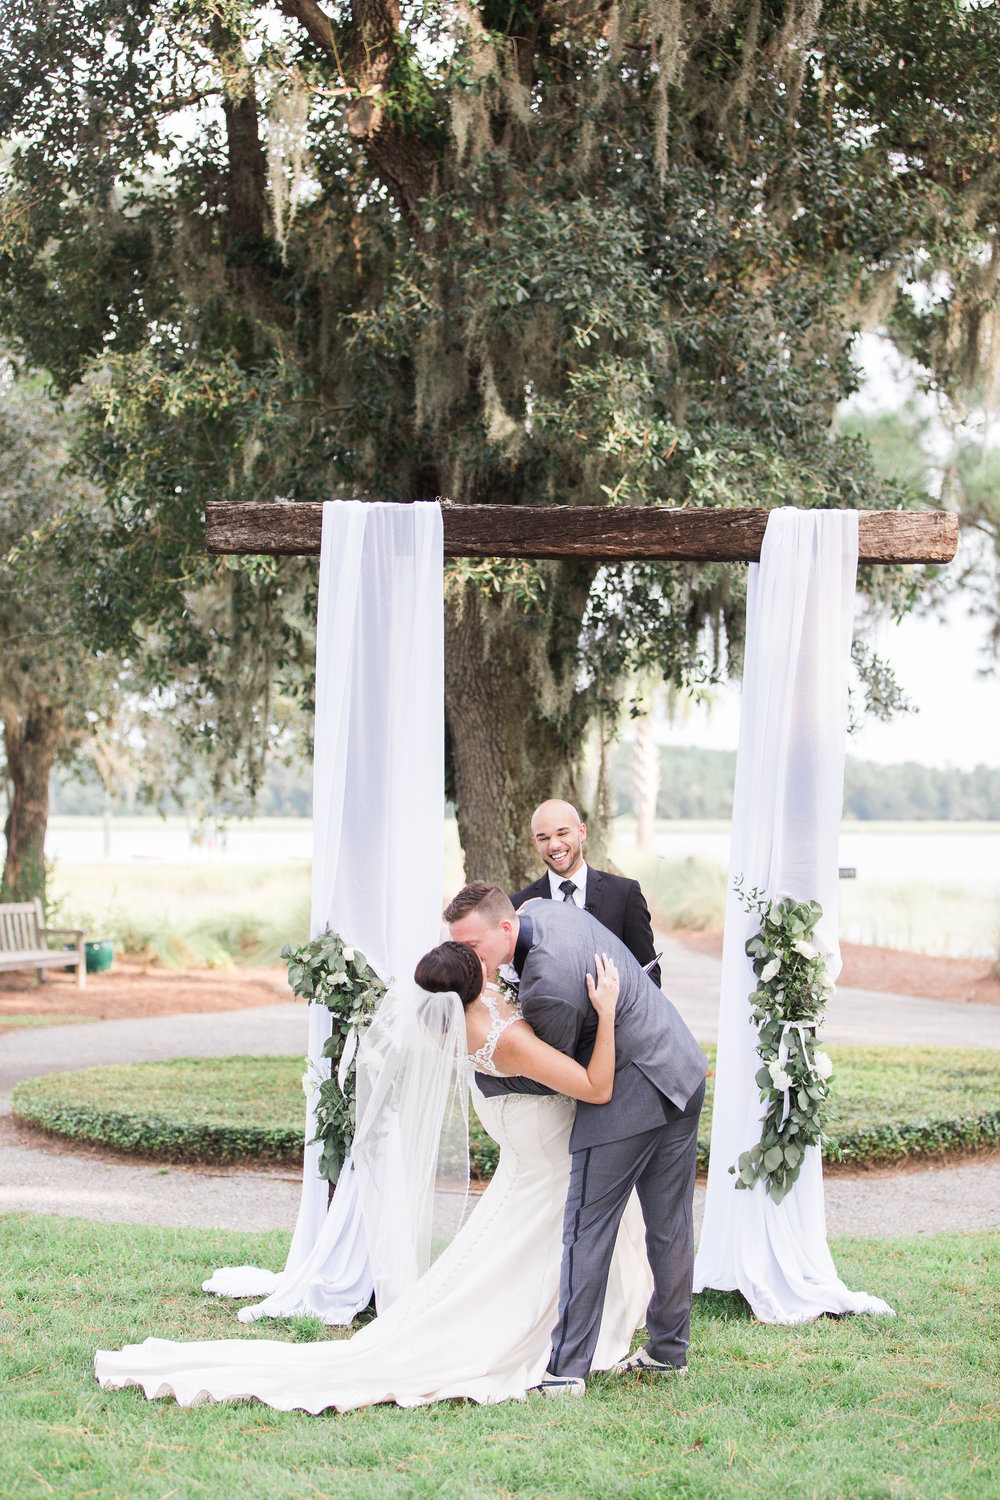 apt-b-photography-lauren-graham-oldfield-wedding-south-carolina-wedding-photographer-savannah-wedding-lowcountry-wedding-coastal-wedding-navy-wedding-plantation-wedding-first-kiss-28.JPG